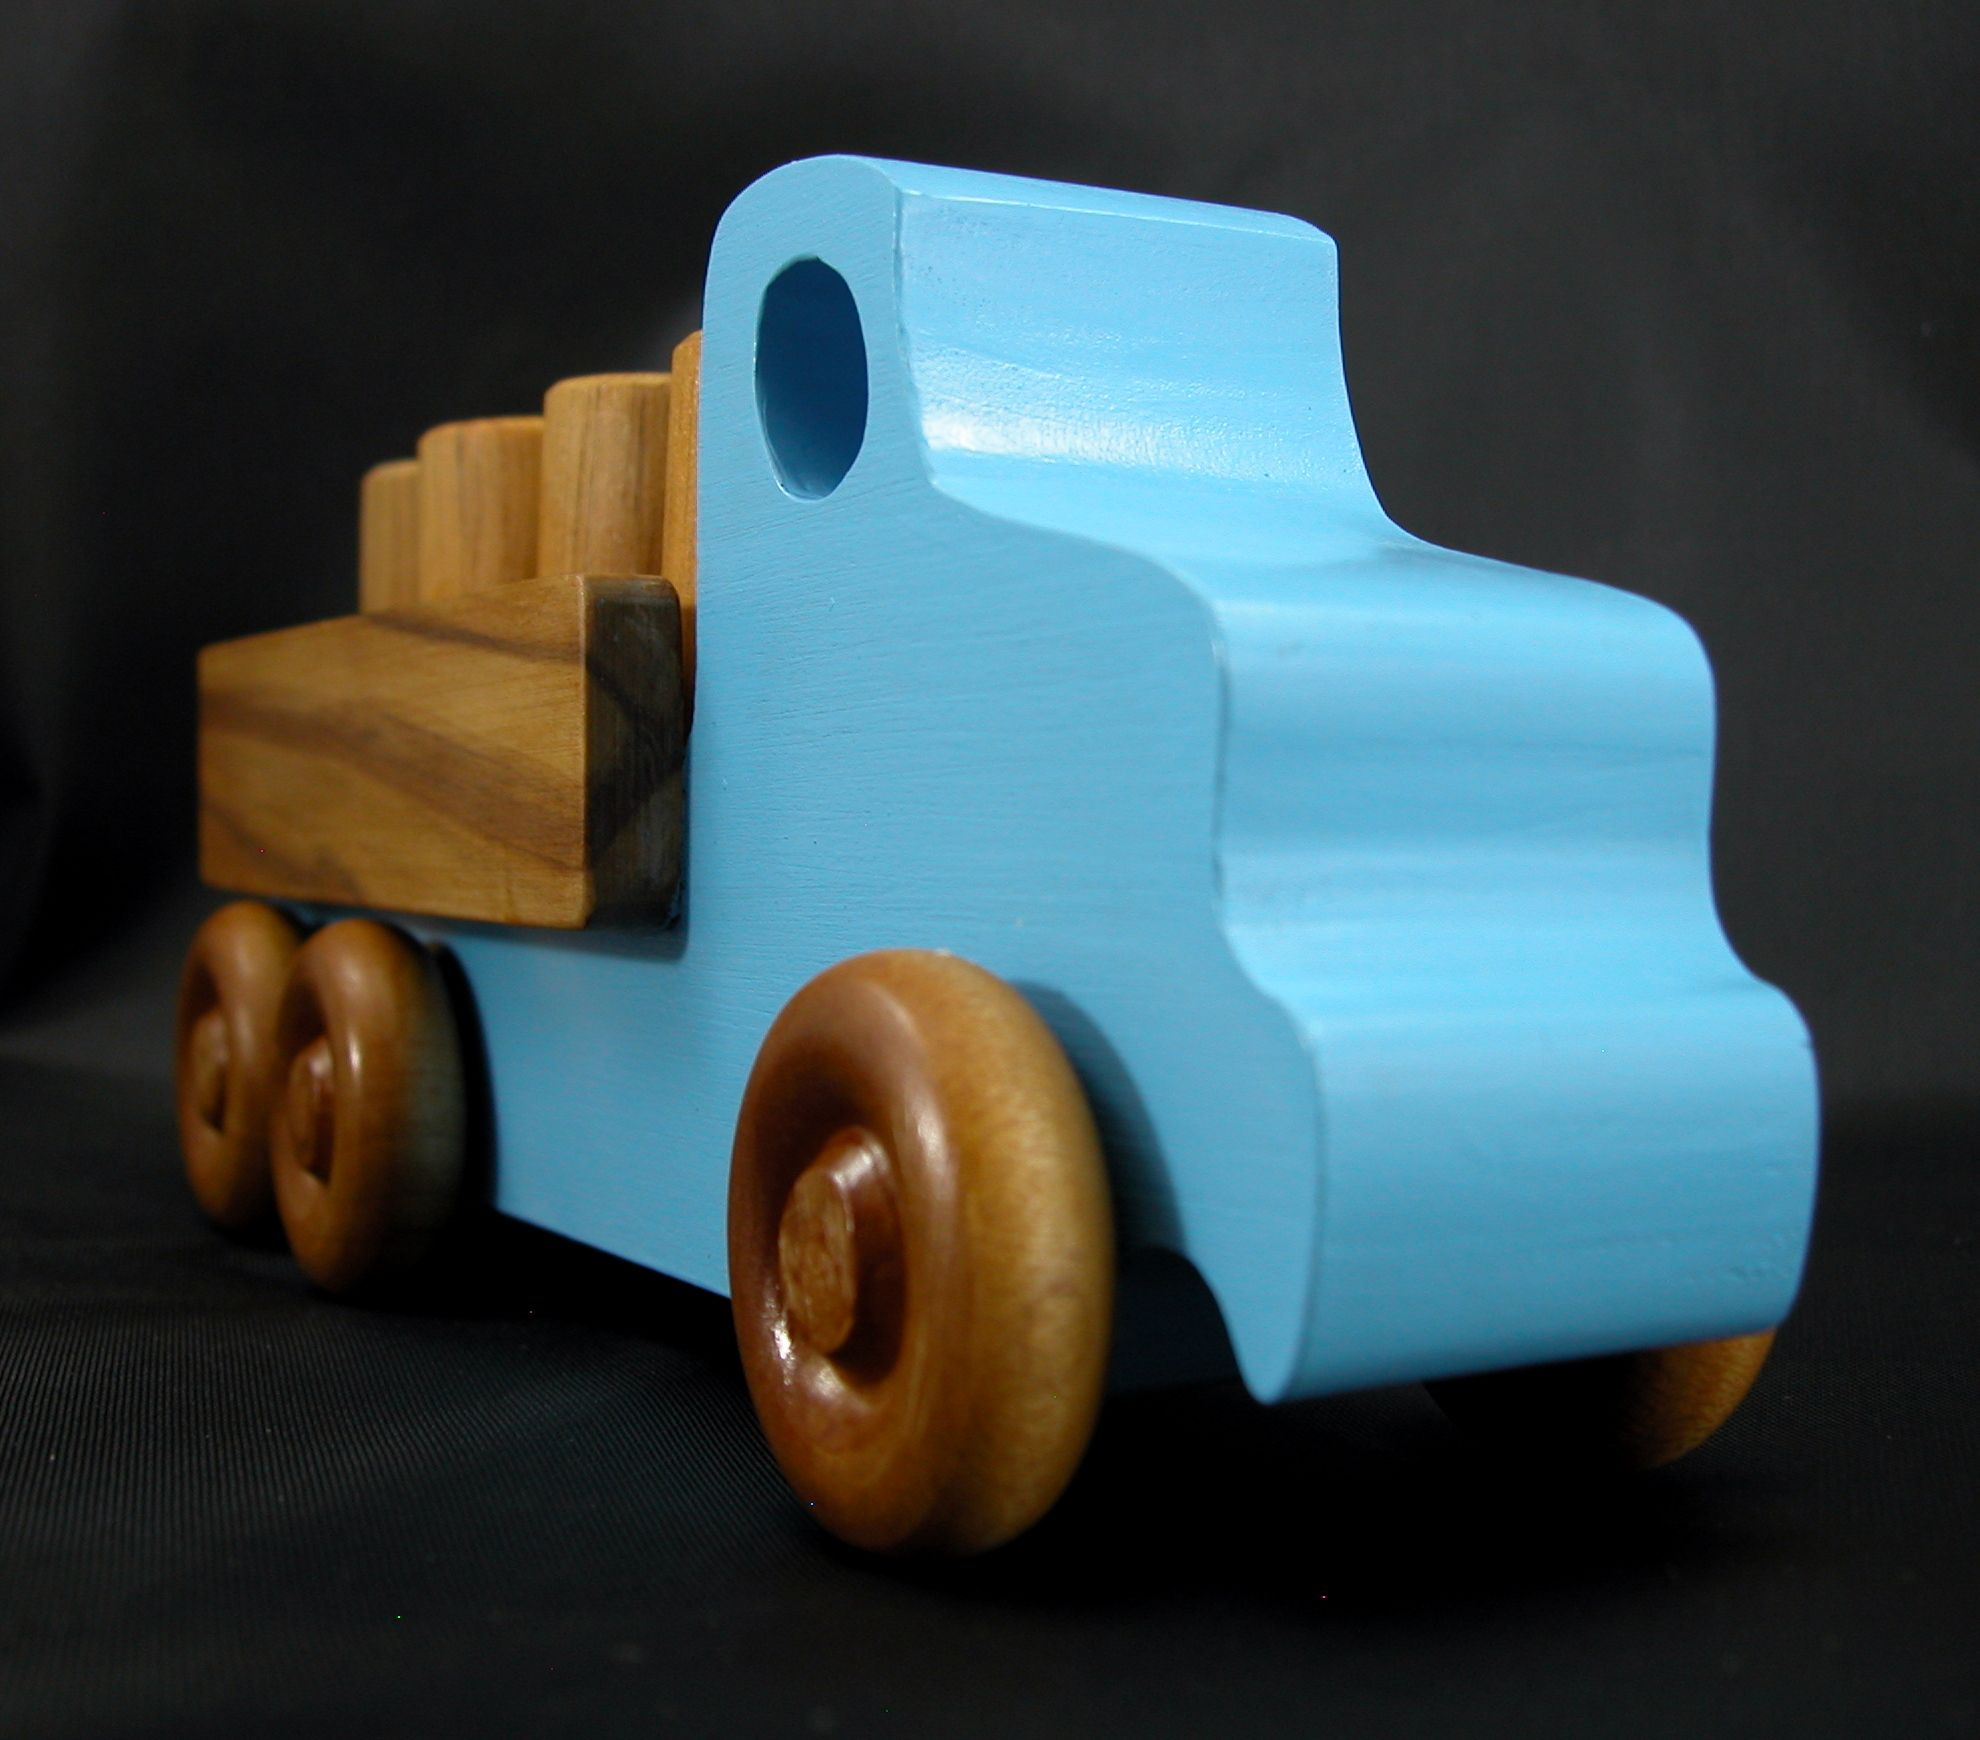 Car 3 toys  Handmade Wooden Toy Trucks Lorry Truck from The Quick N Easy